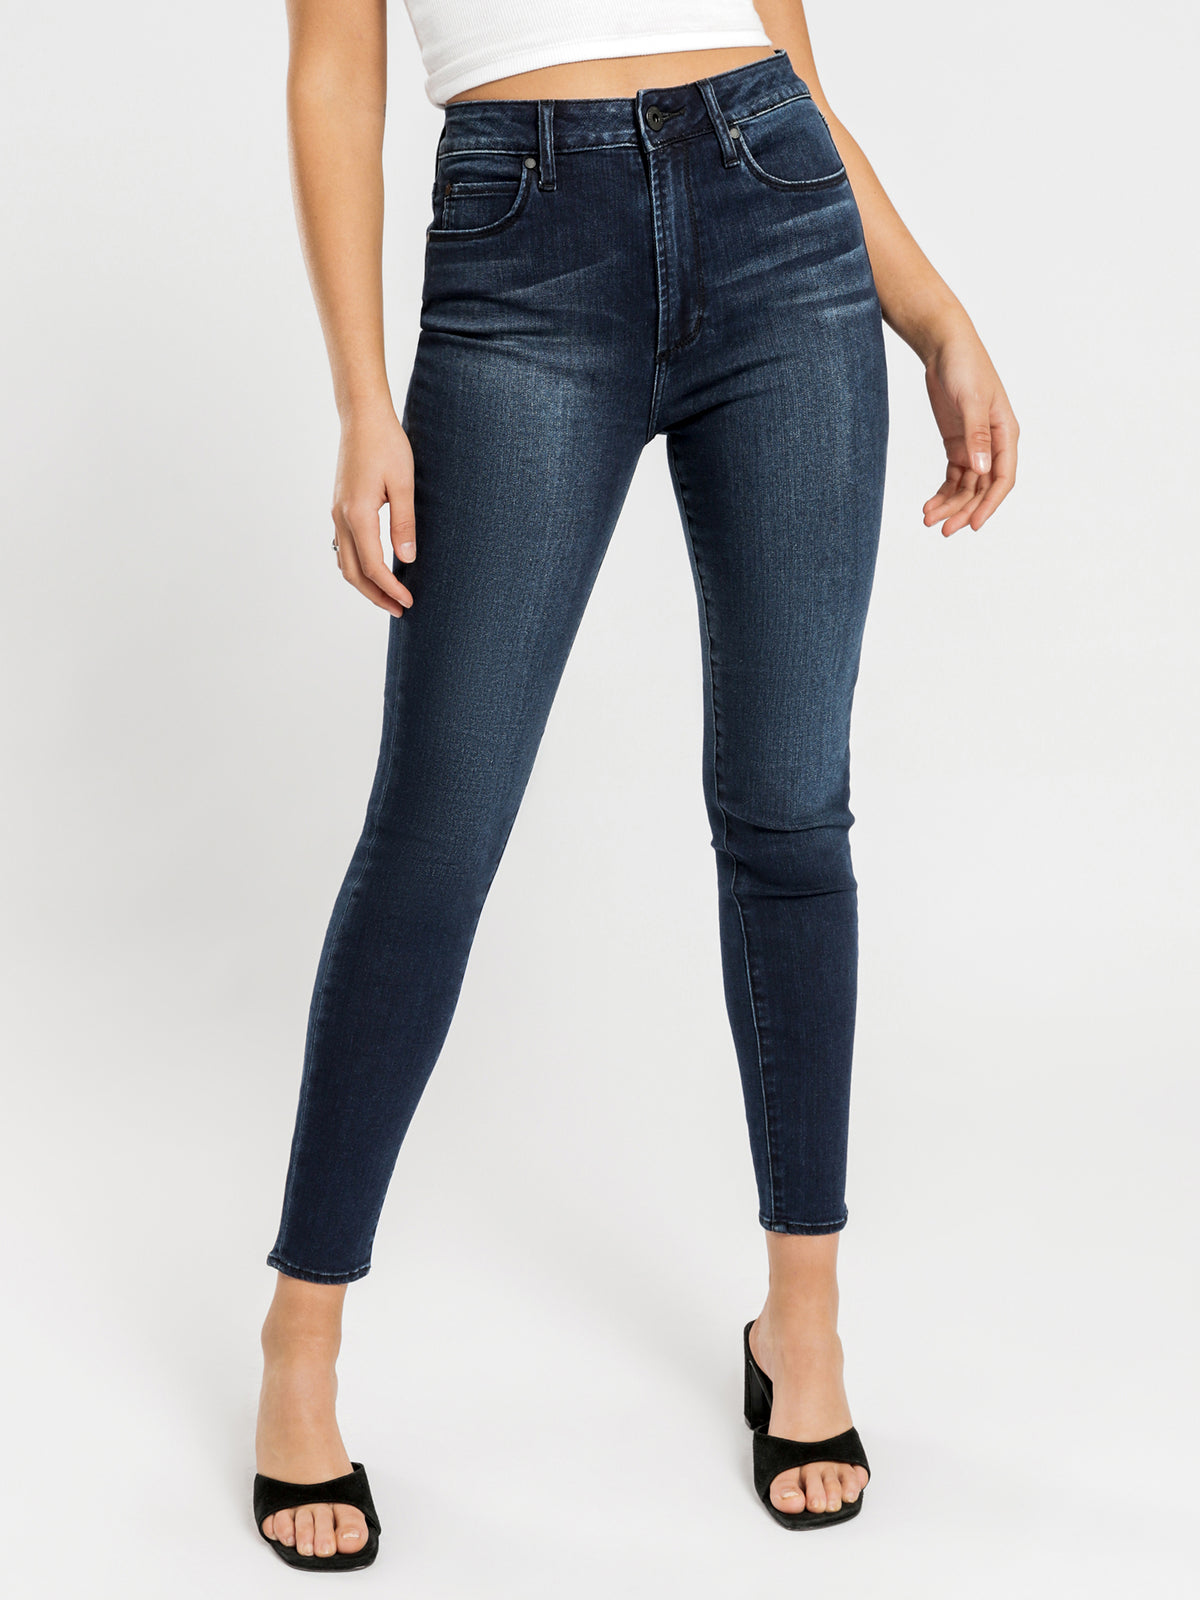 High Lisa Skinny Ankle Hug Jeans in Dark Midnight